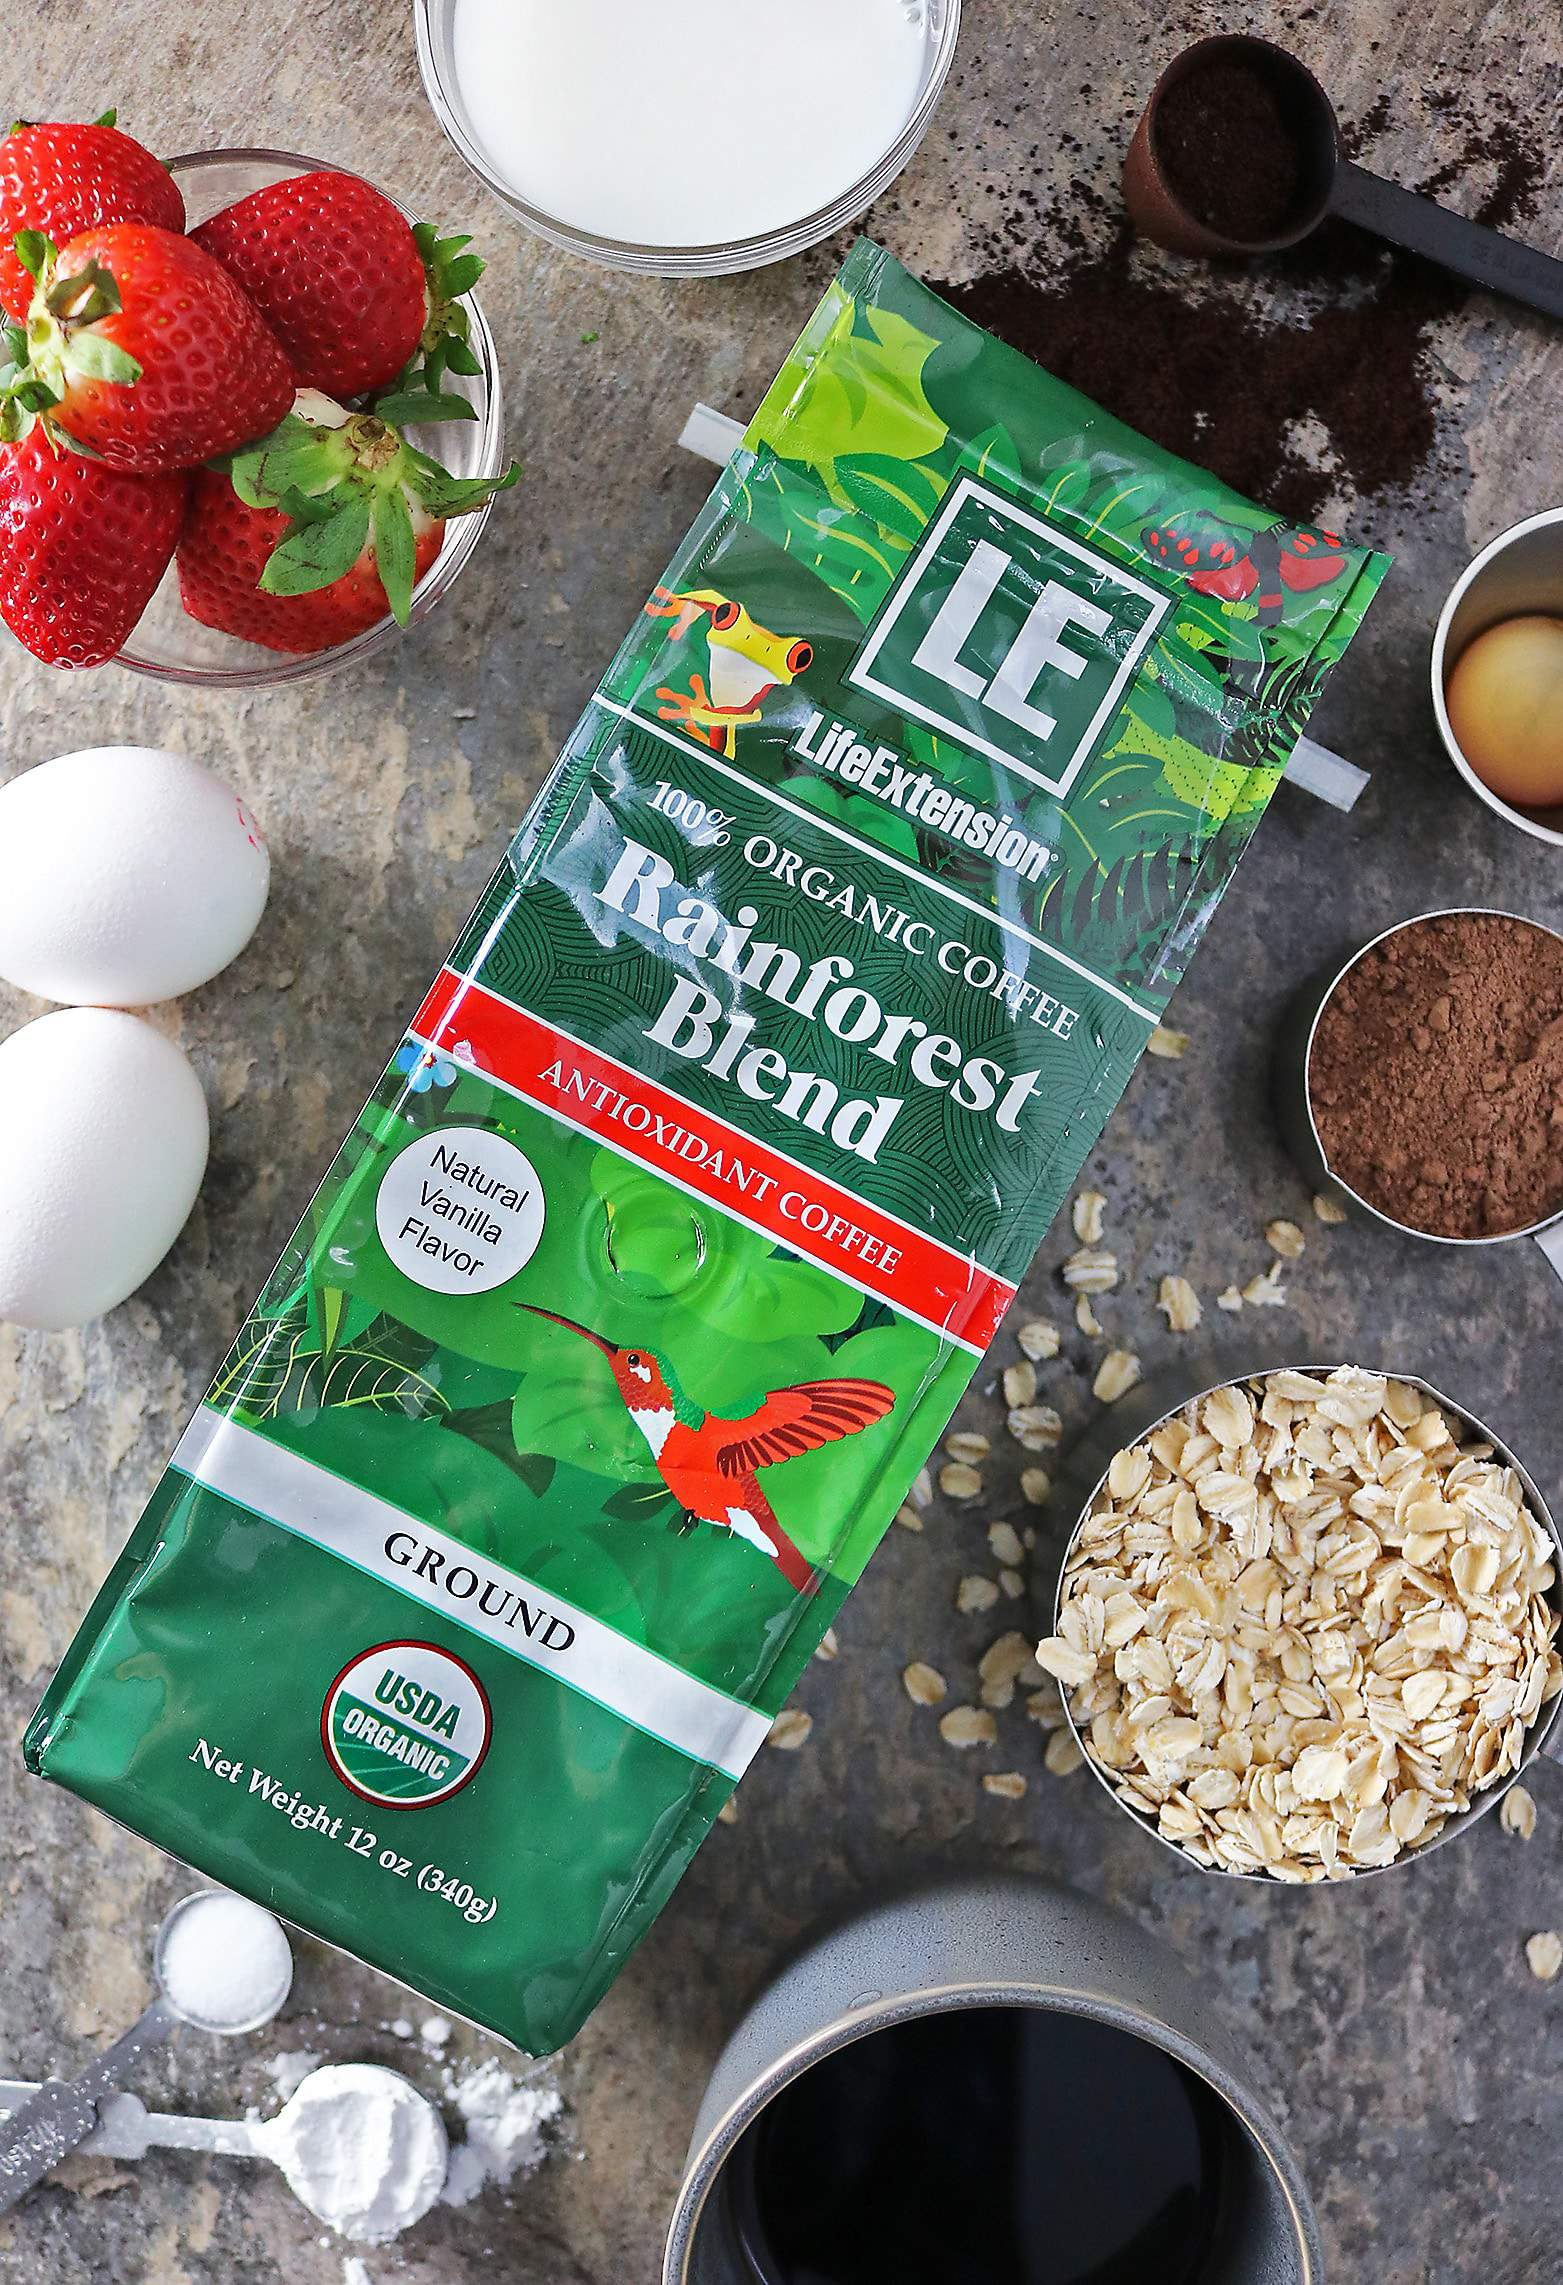 Life Extension Organic Antioxidant Rainforest Blend Coffee